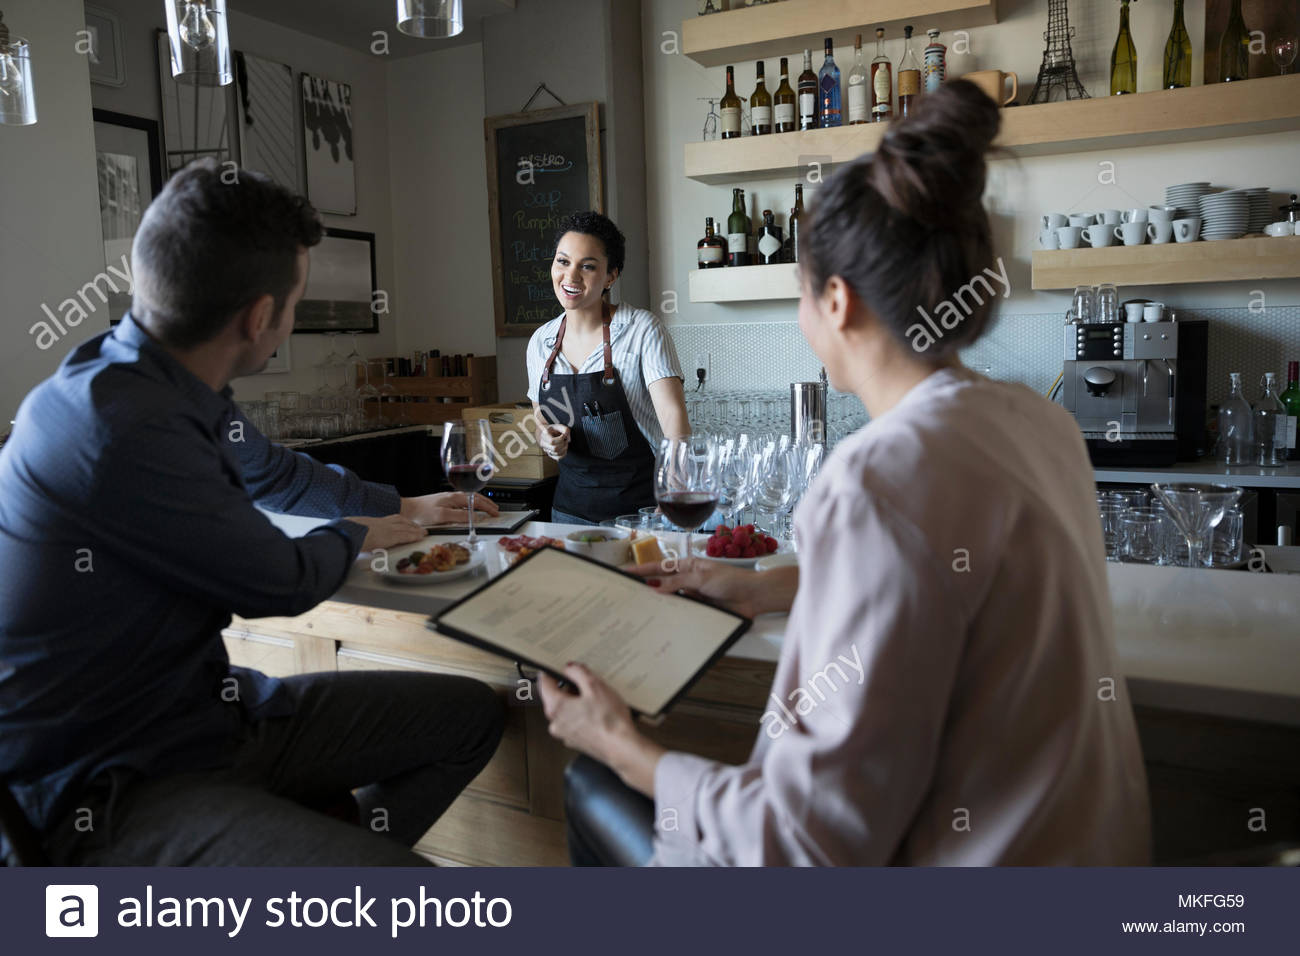 Young couple on date ordering from bartender in bar - Stock Image